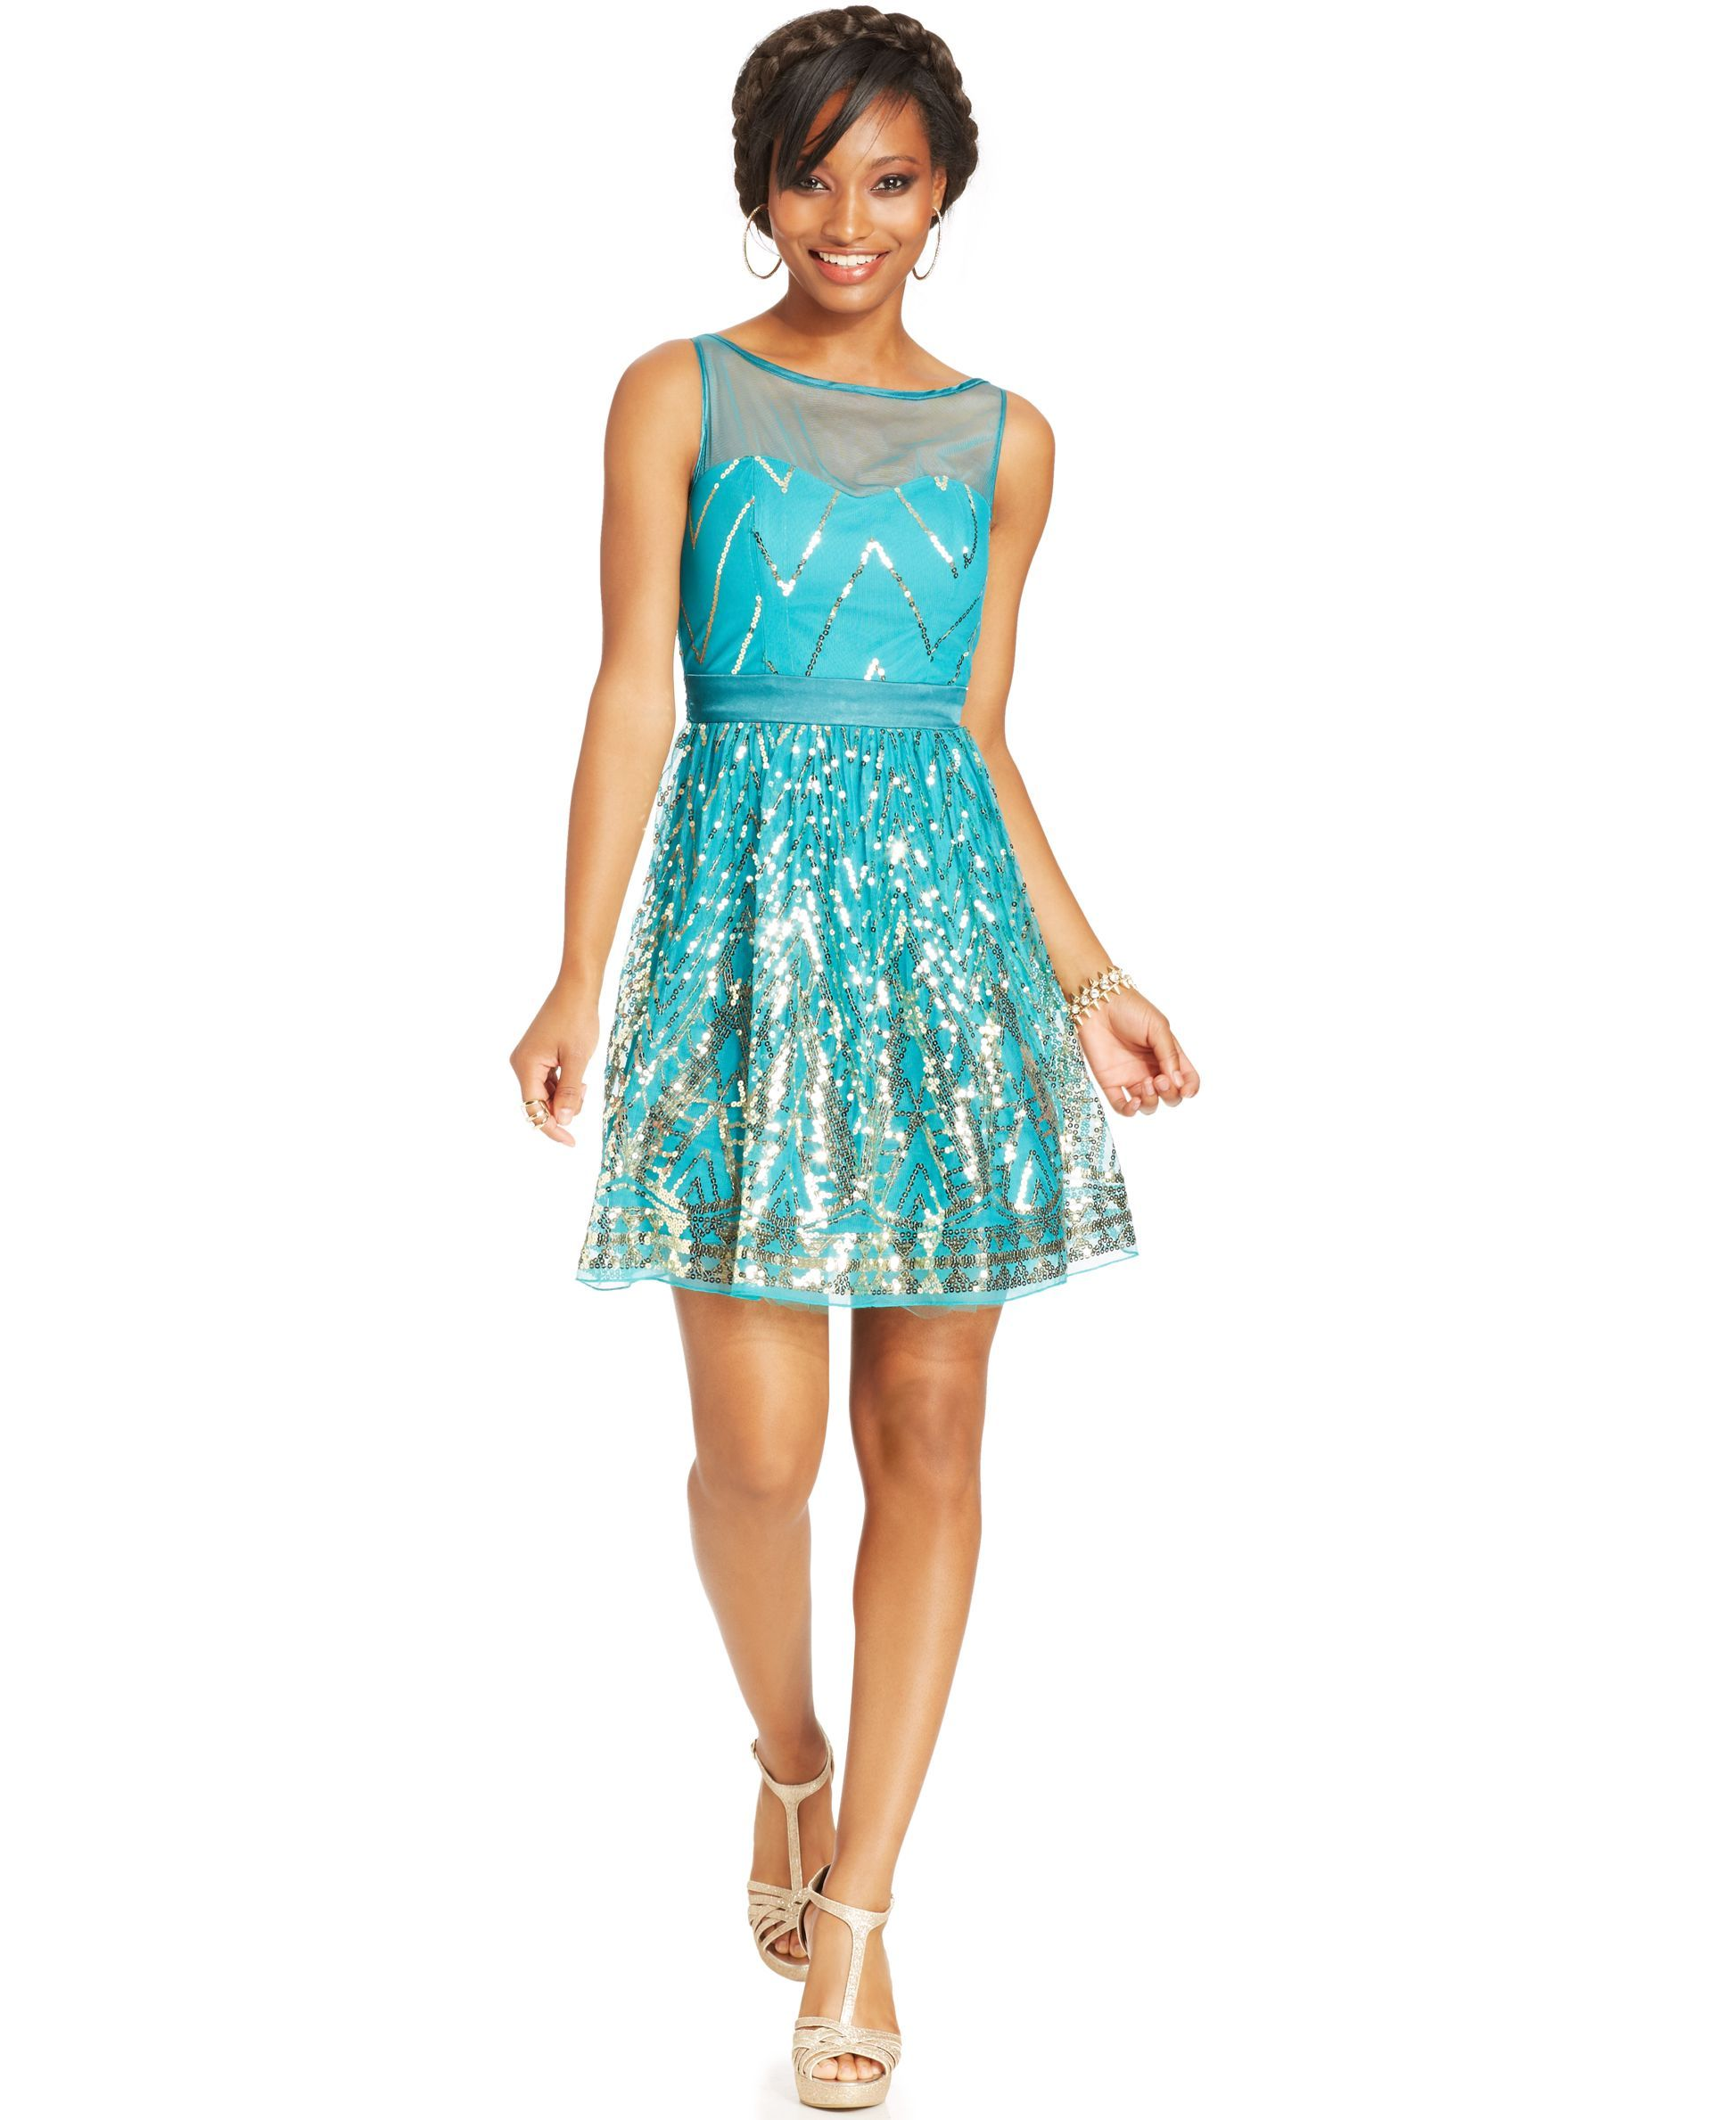 Crystal Doll Juniors' Sequin A-line Dress